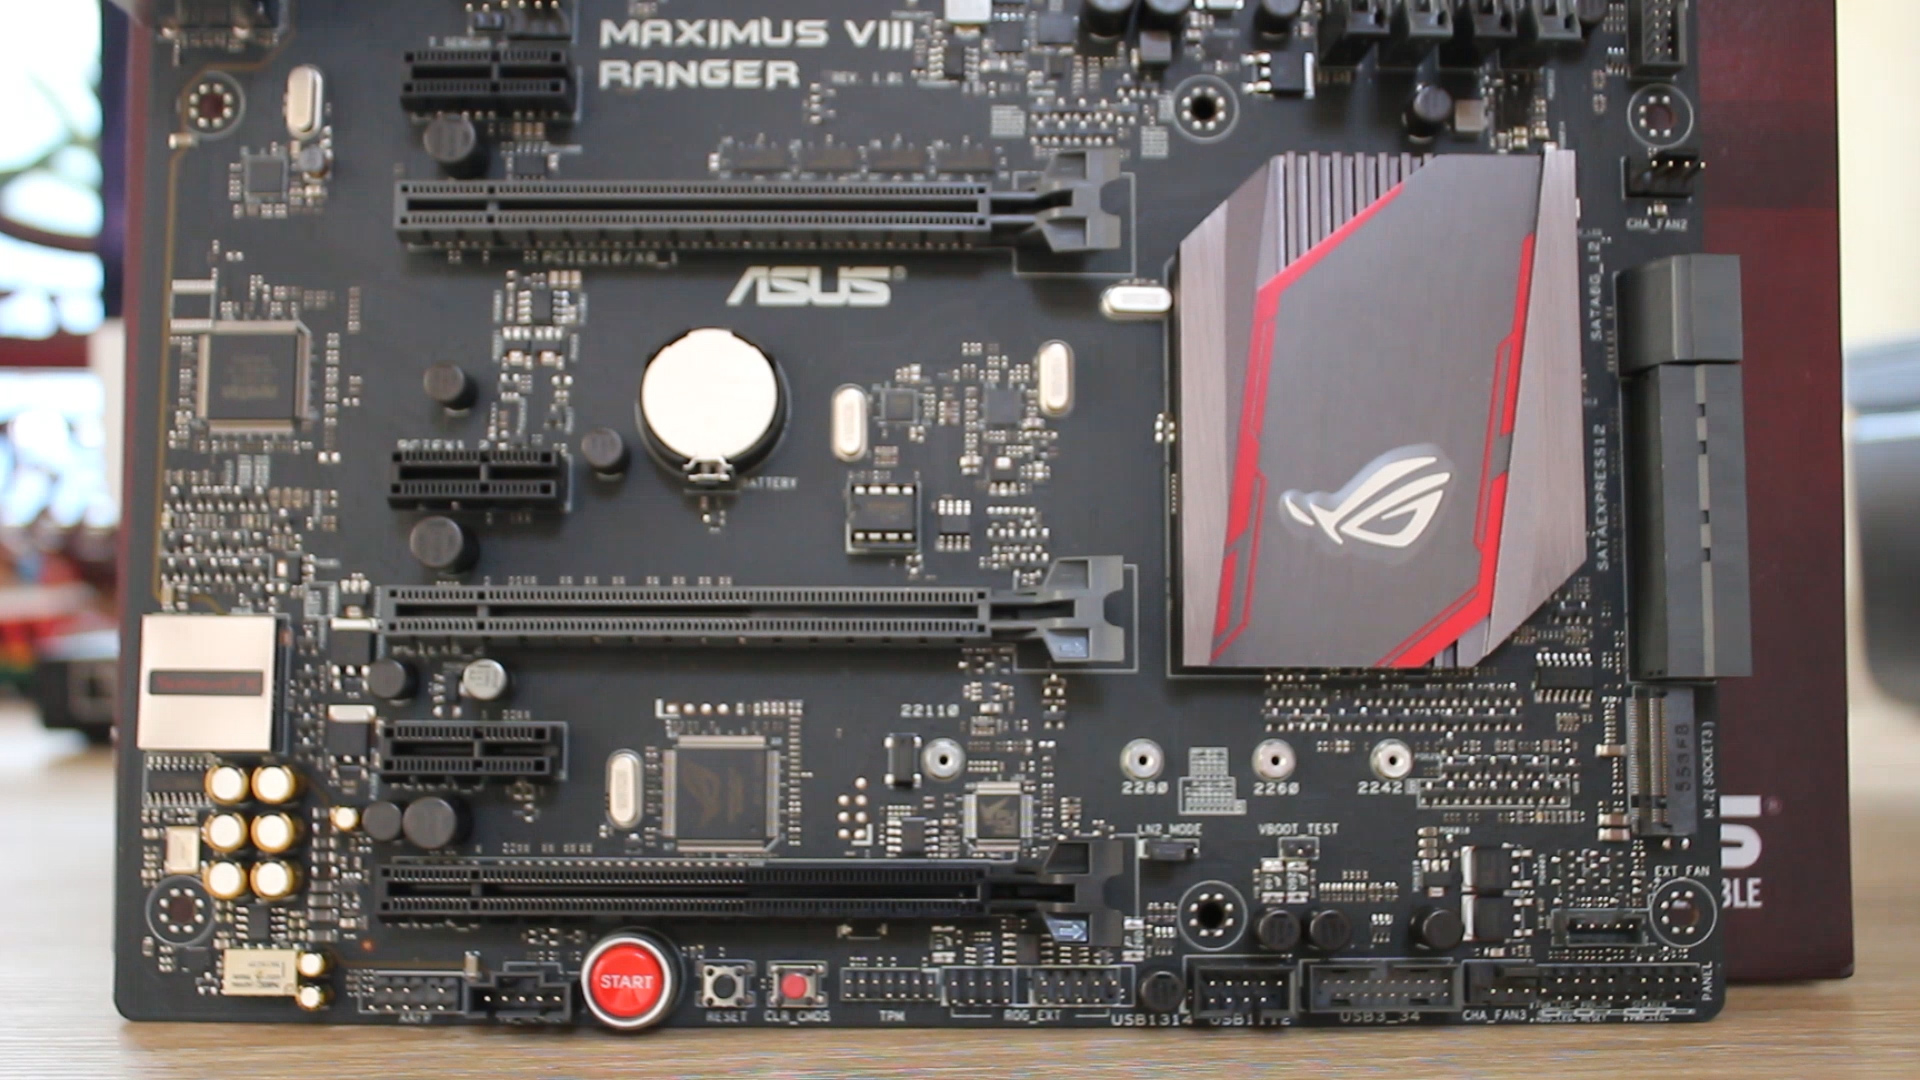 asus maximus viii ranger z170 motherboard review techteamgb. Black Bedroom Furniture Sets. Home Design Ideas